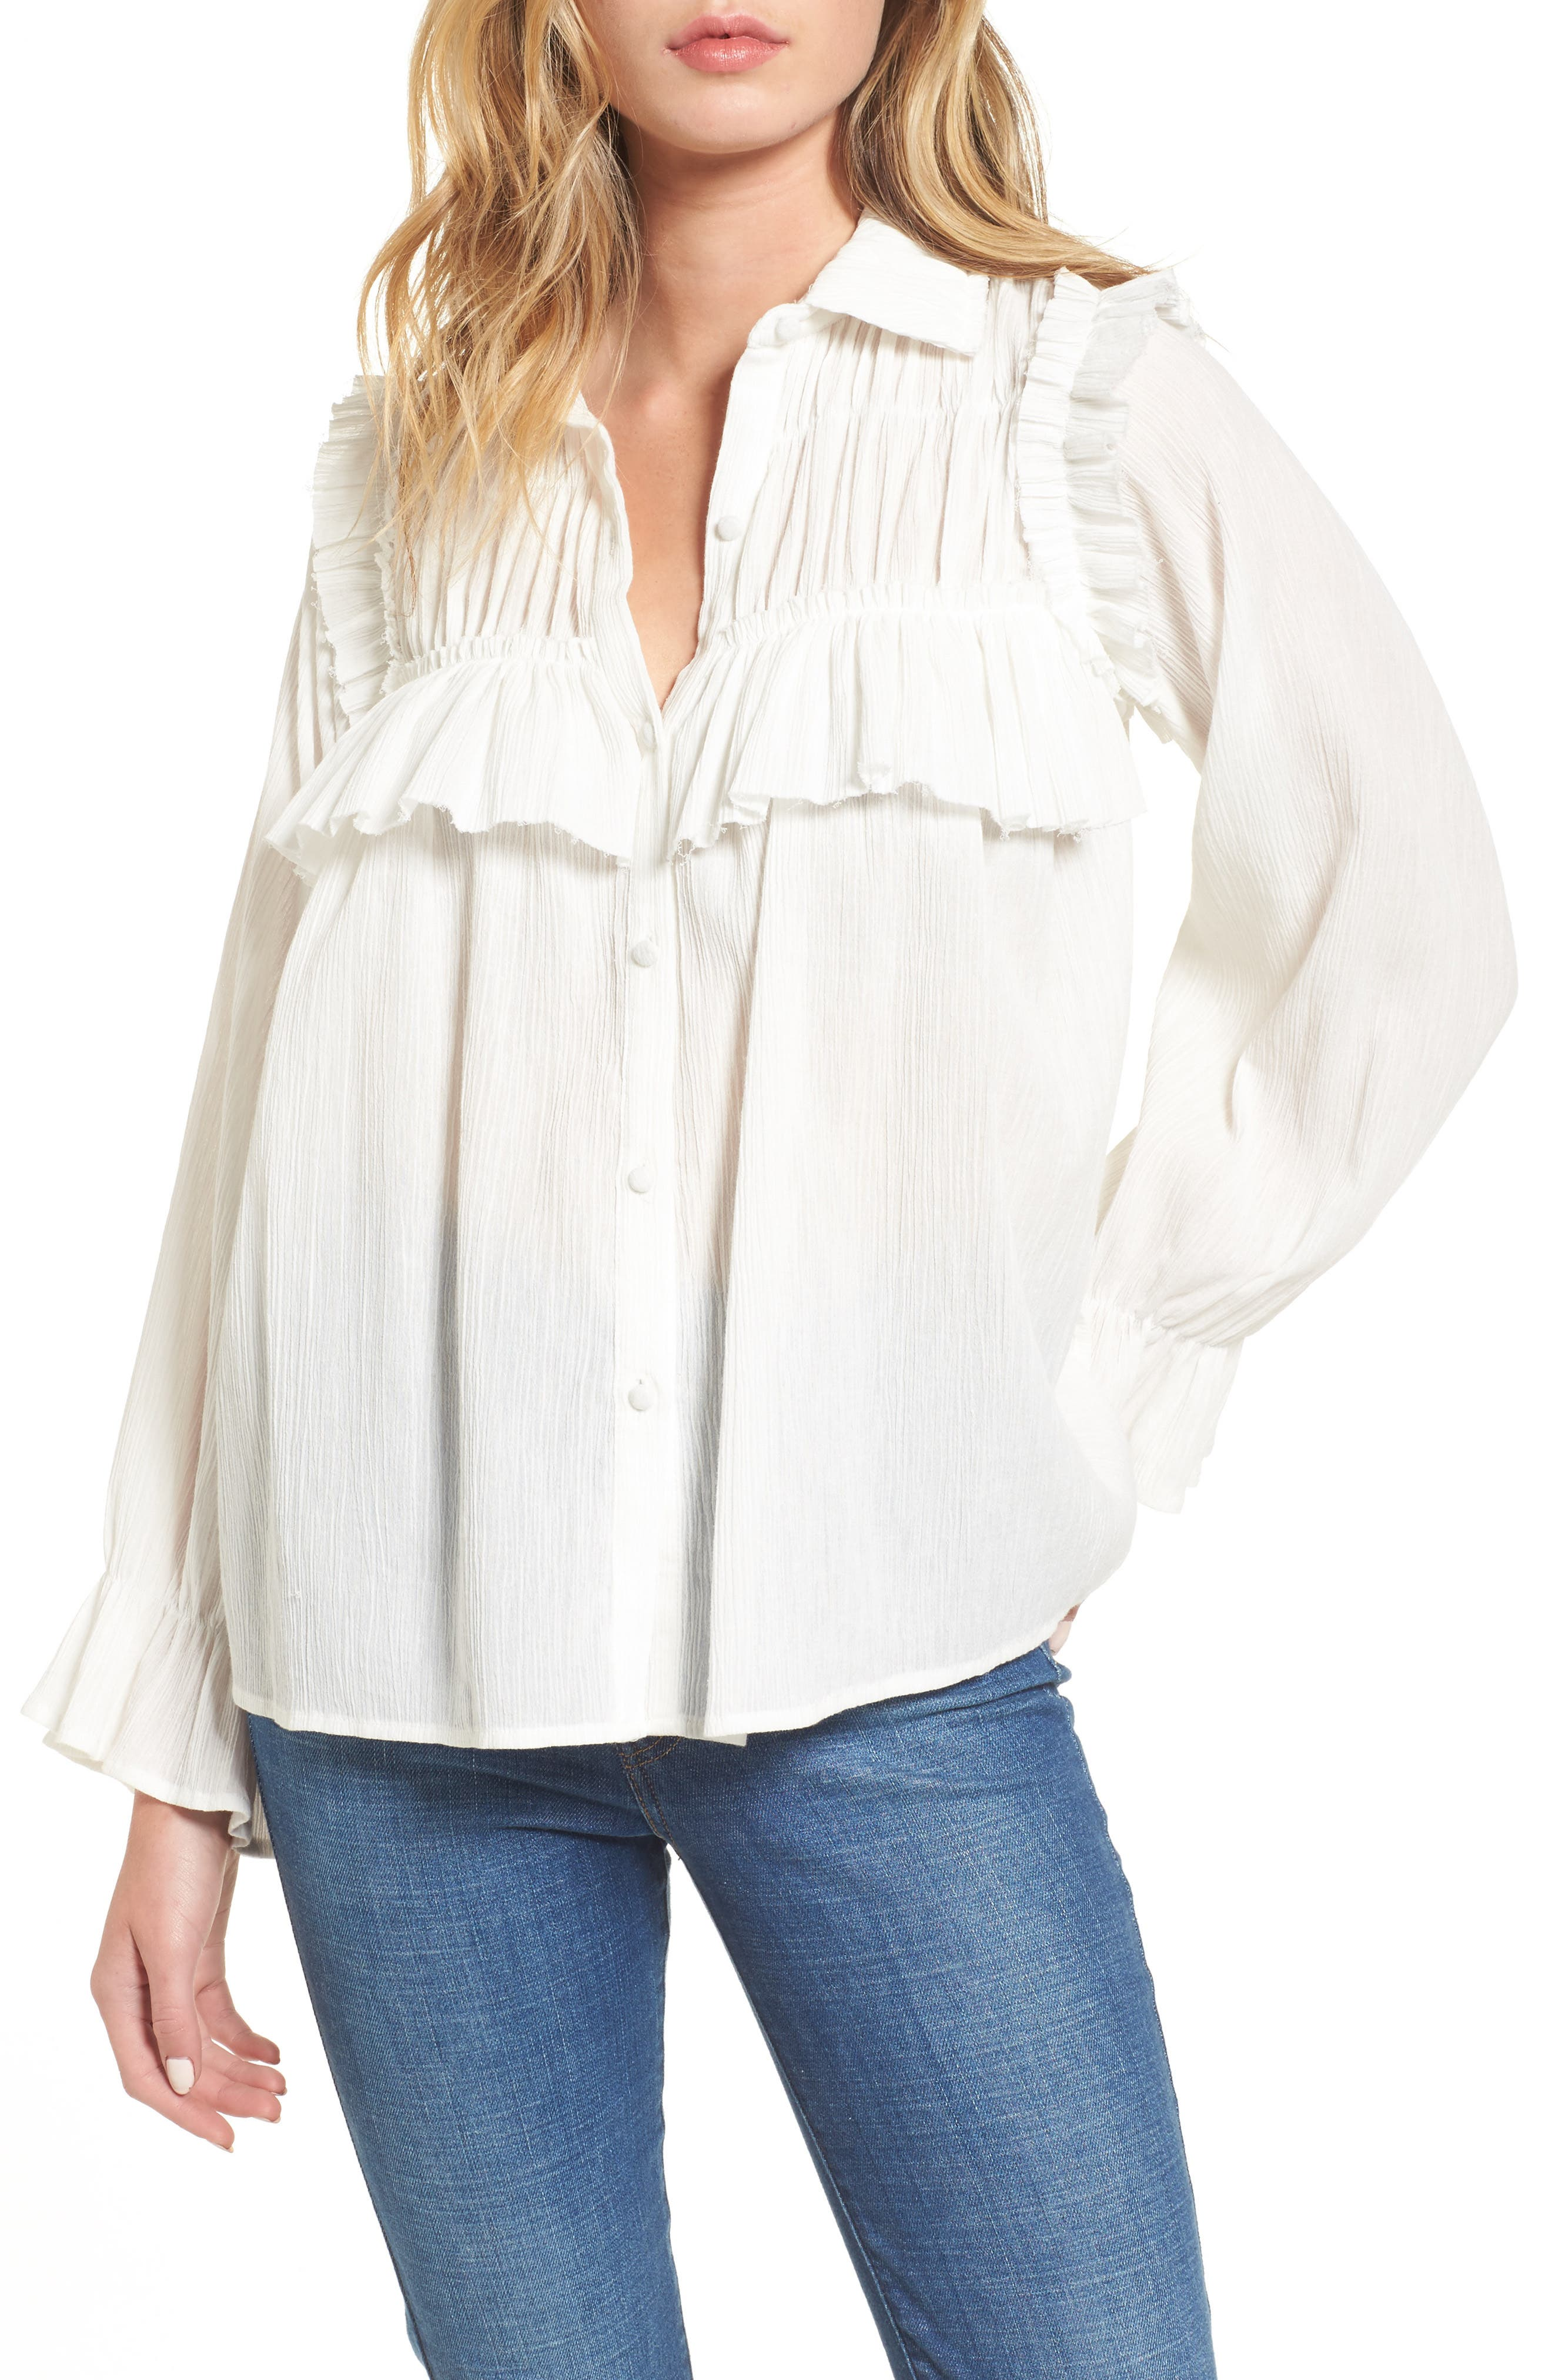 MOON RIVER Ruffle Cotton Blouse